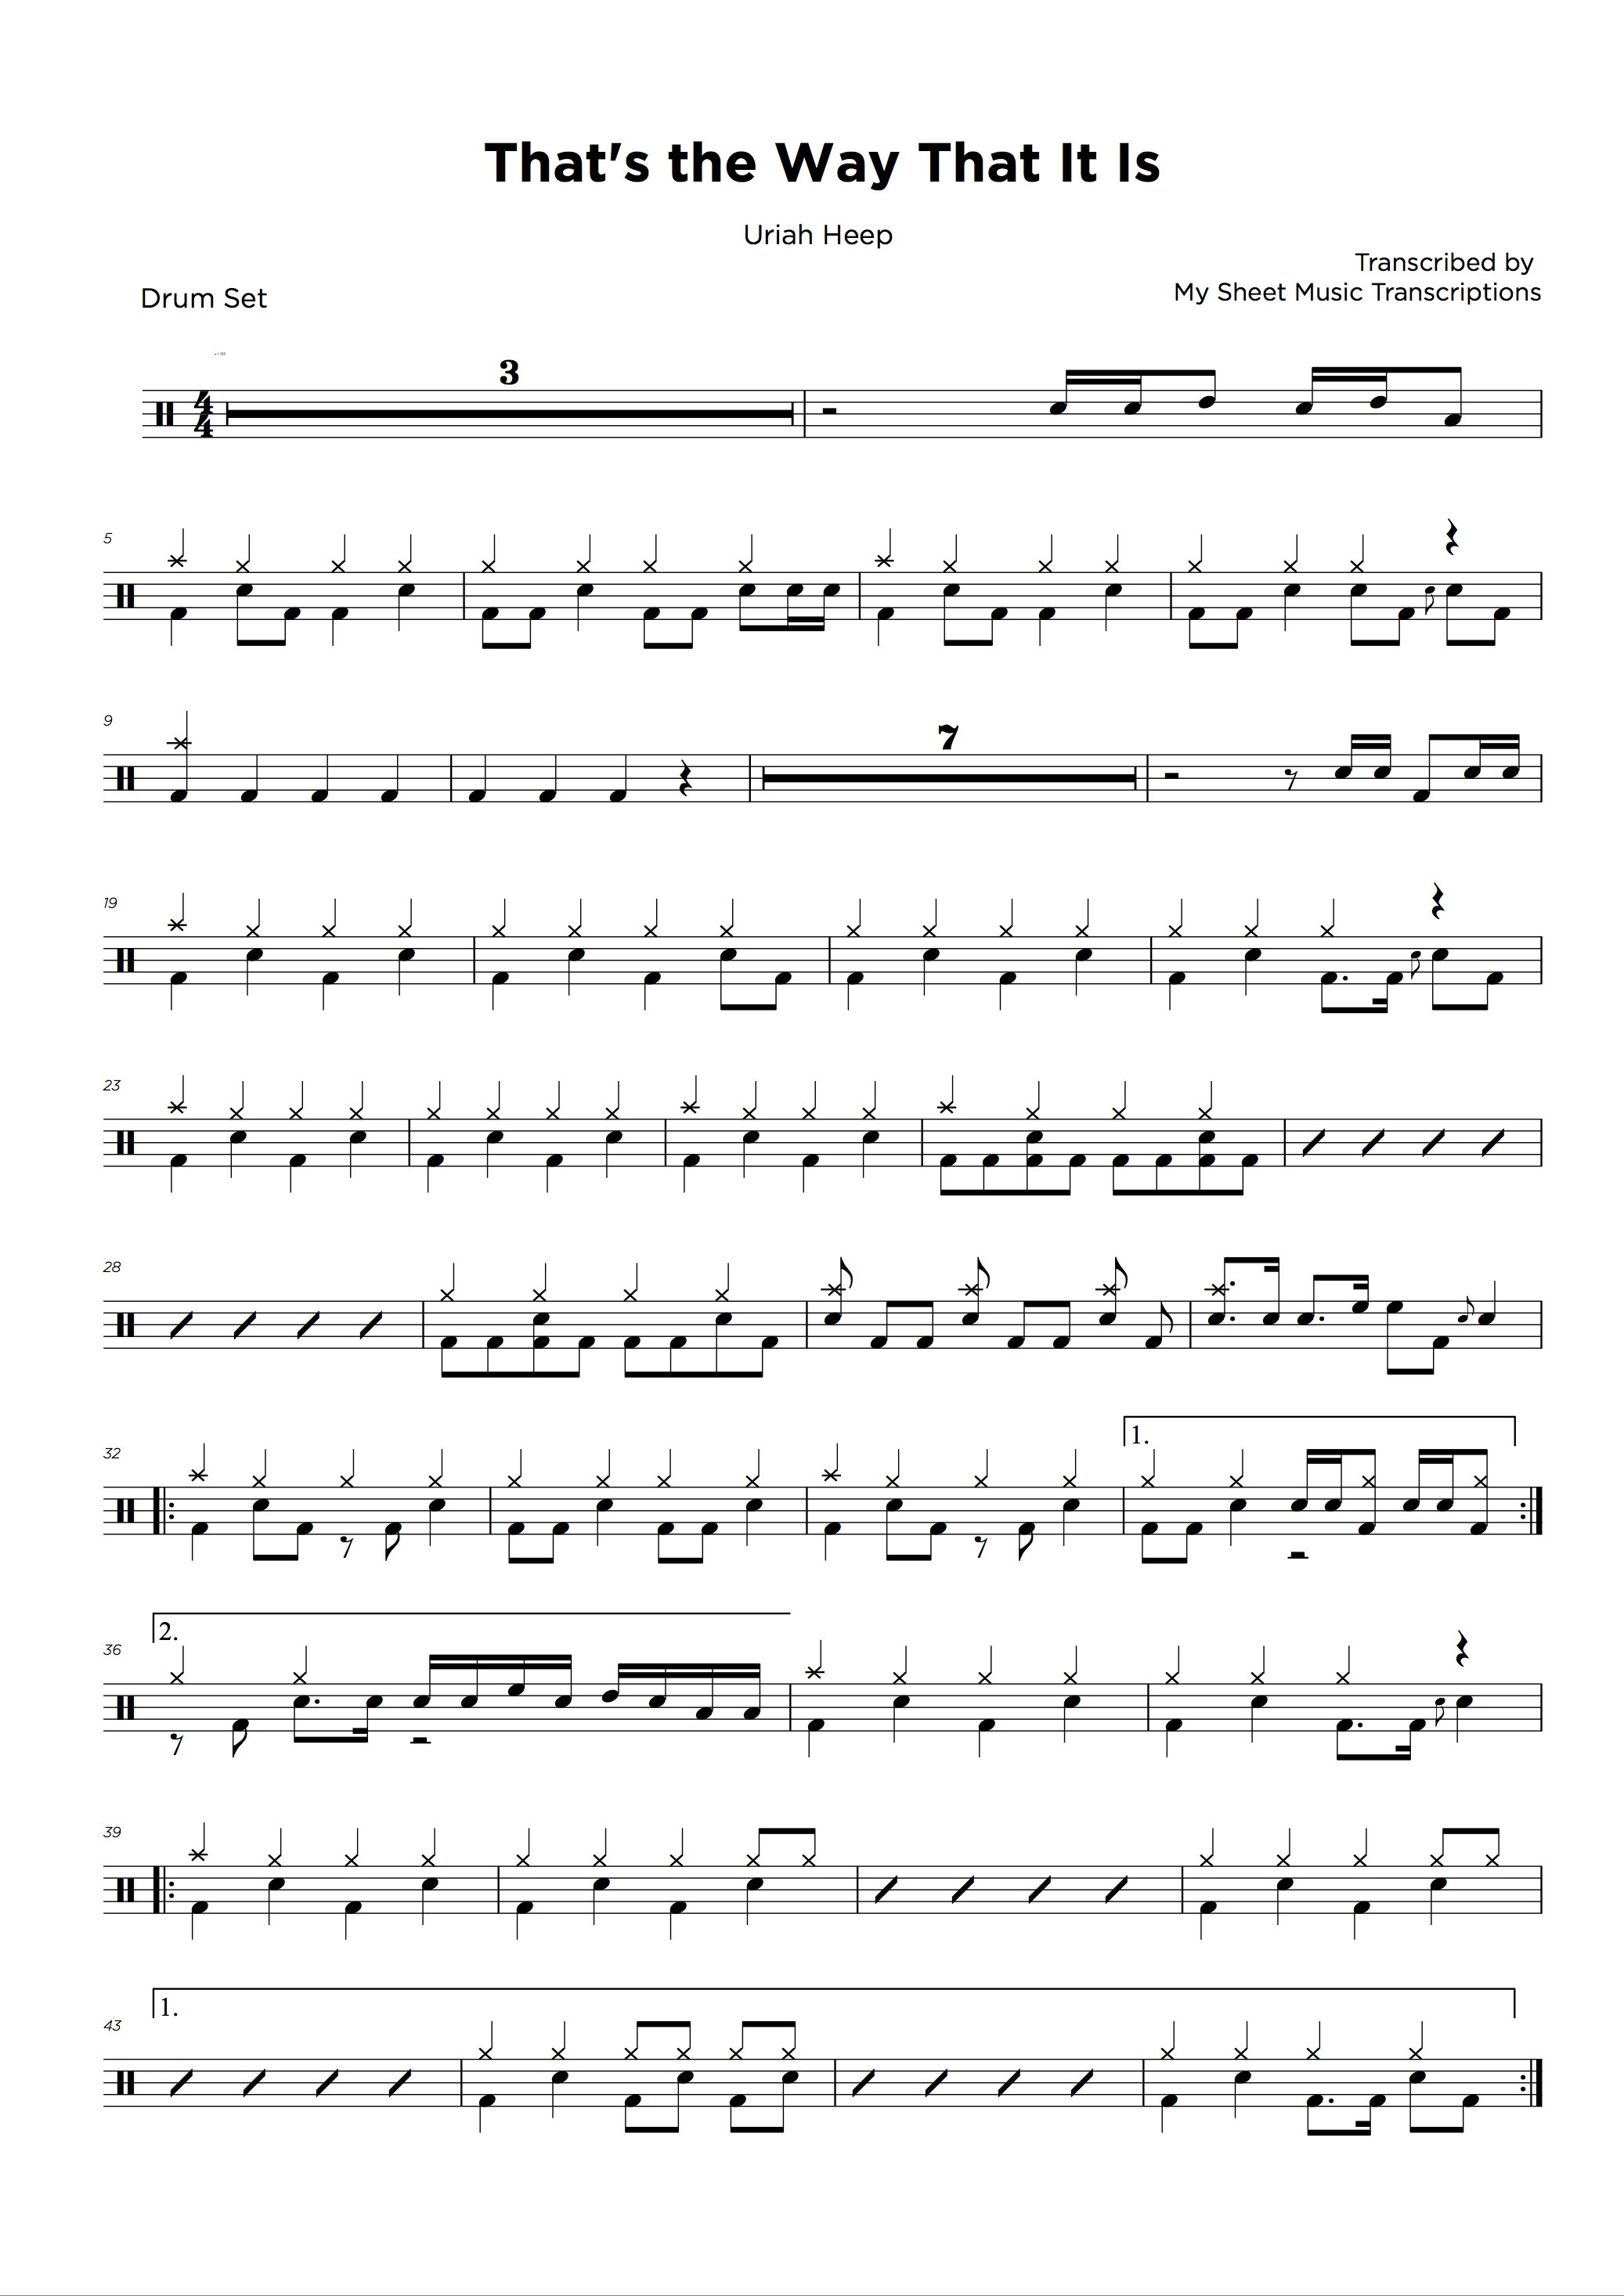 Drum transcription service • My Sheet Music Transcriptions